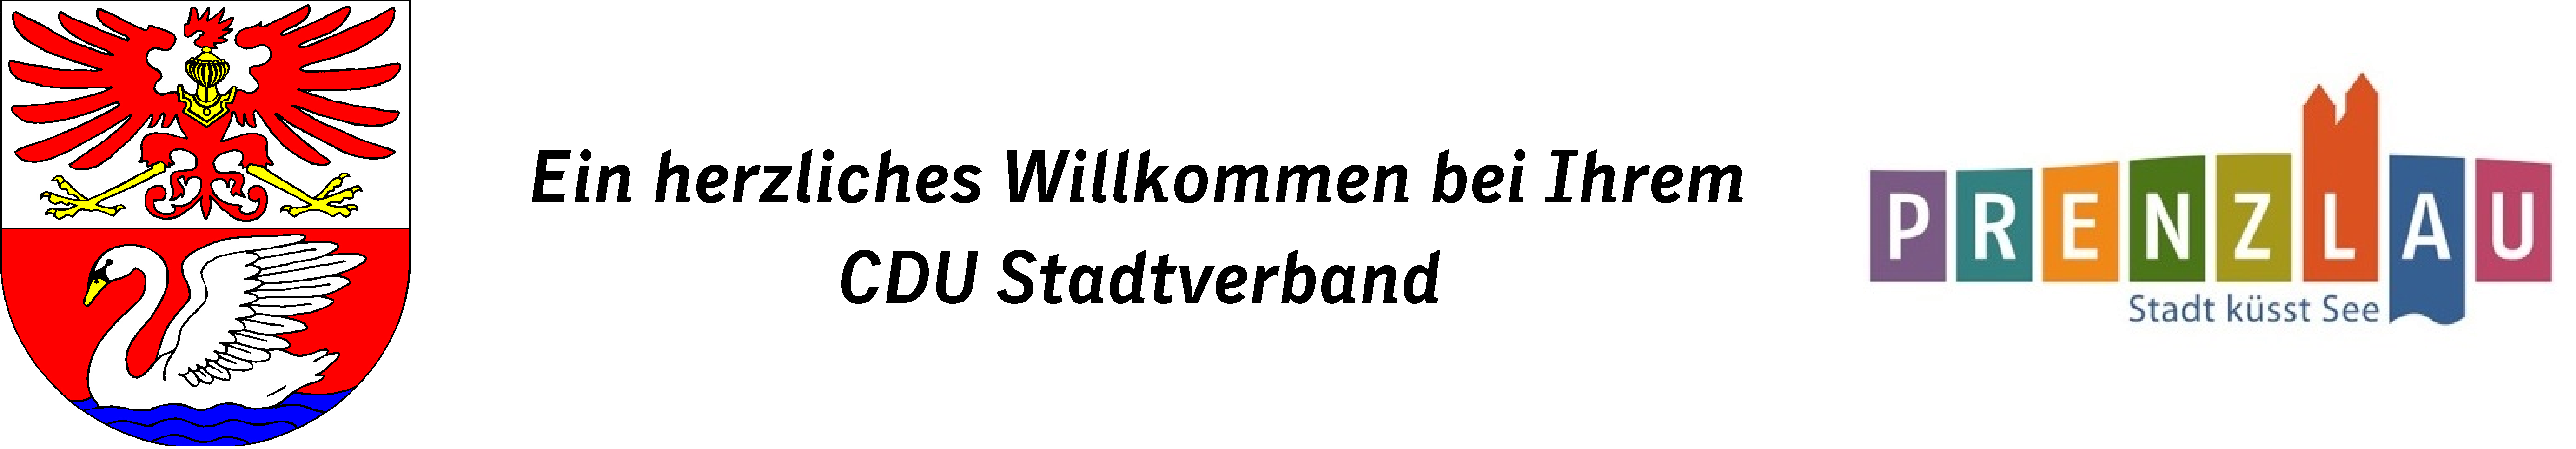 Pz Verband See 1